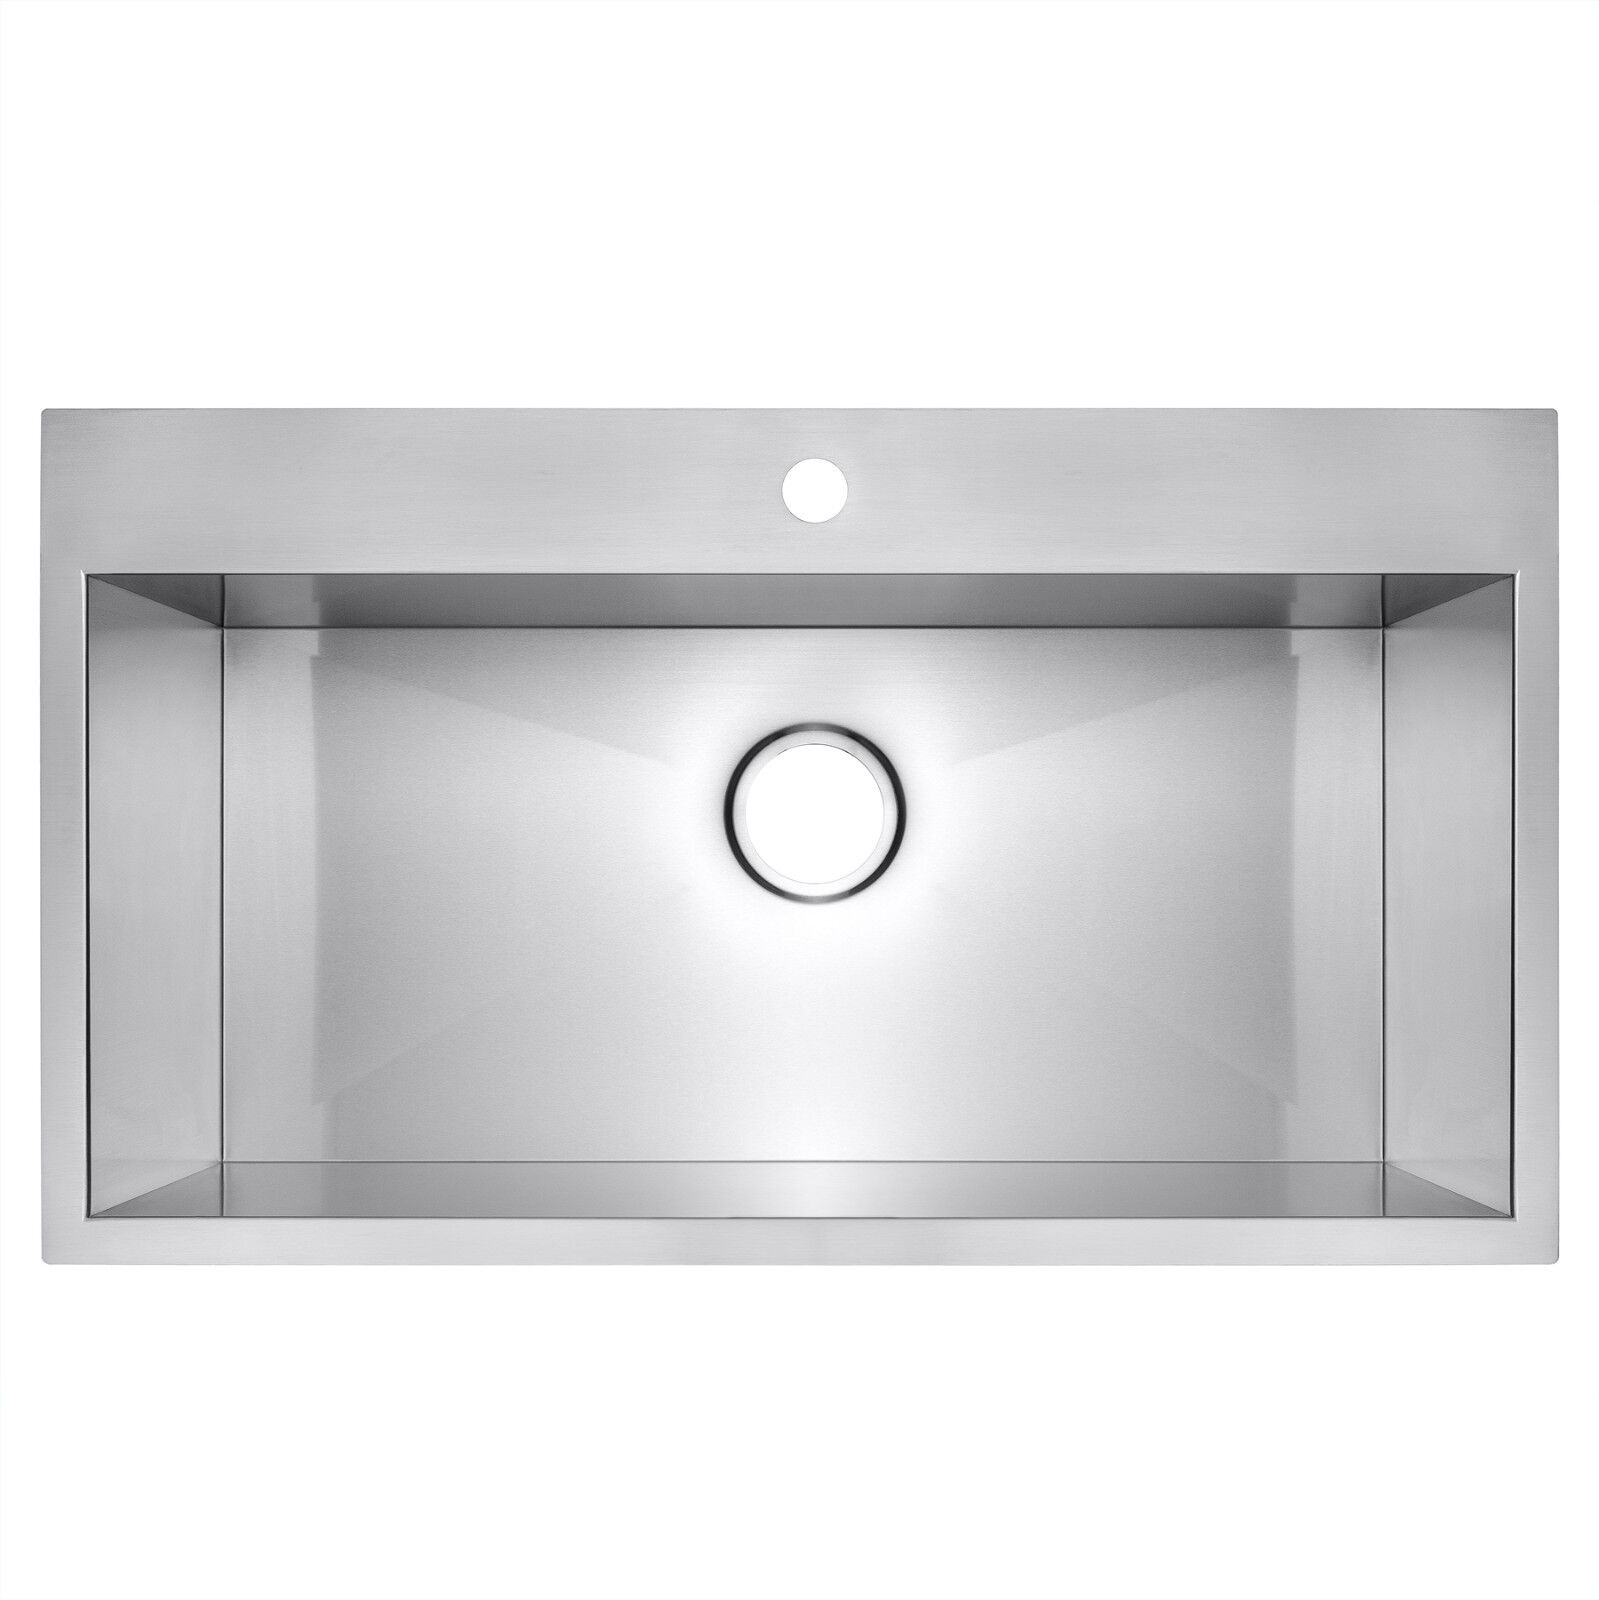 "30"" x 18"" x 9"" Topmount Drop In Single Bowl Basin Stainless"